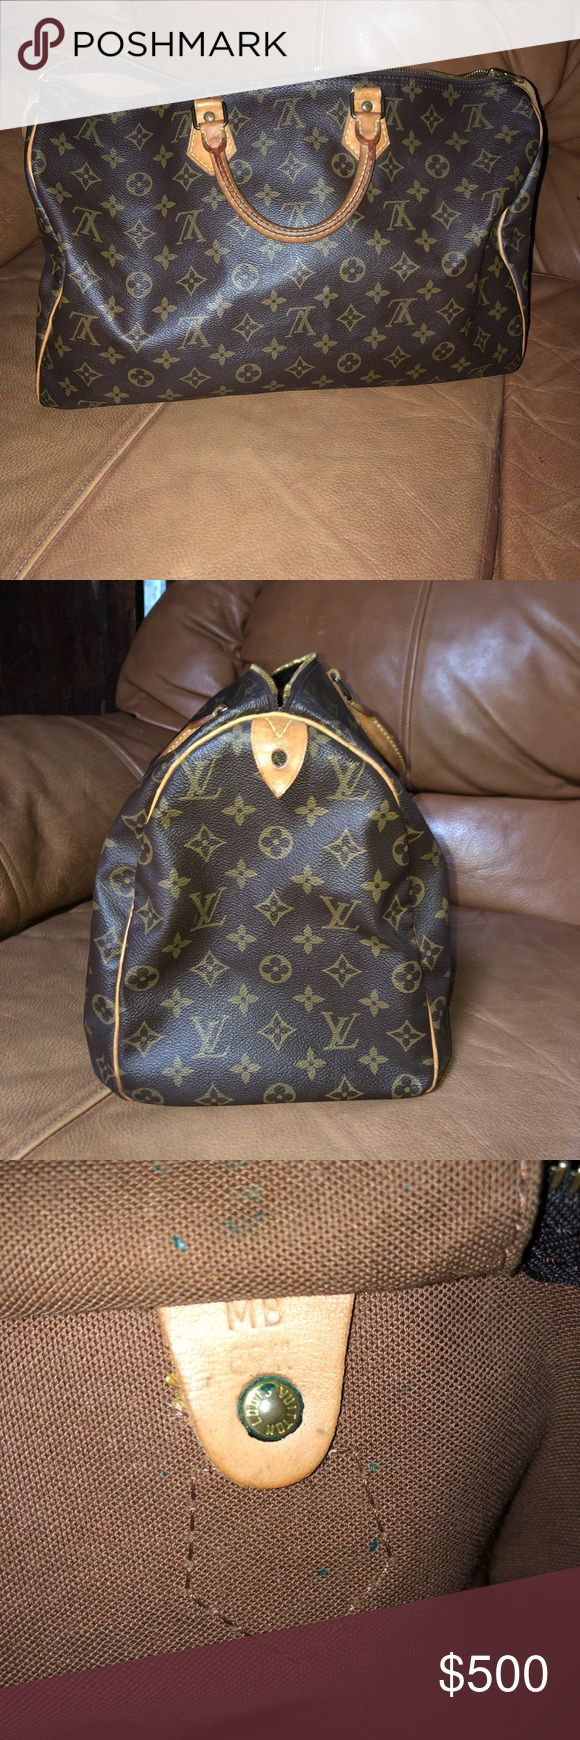 Louis Vuitton Authentic Speedy 40 Lovely Authentic Louis Vuitton Speedy 40 in beautiful condition. Date code is 8911. No stains except for a couple tiny spots on inside bottom. No rips, or tears. No odor noted. Very clean. Purchased from a fellow posher and never worn. Characteristic vachetta and patina reflect time and use of classic aged leather. Louis Vuitton Bags Totes